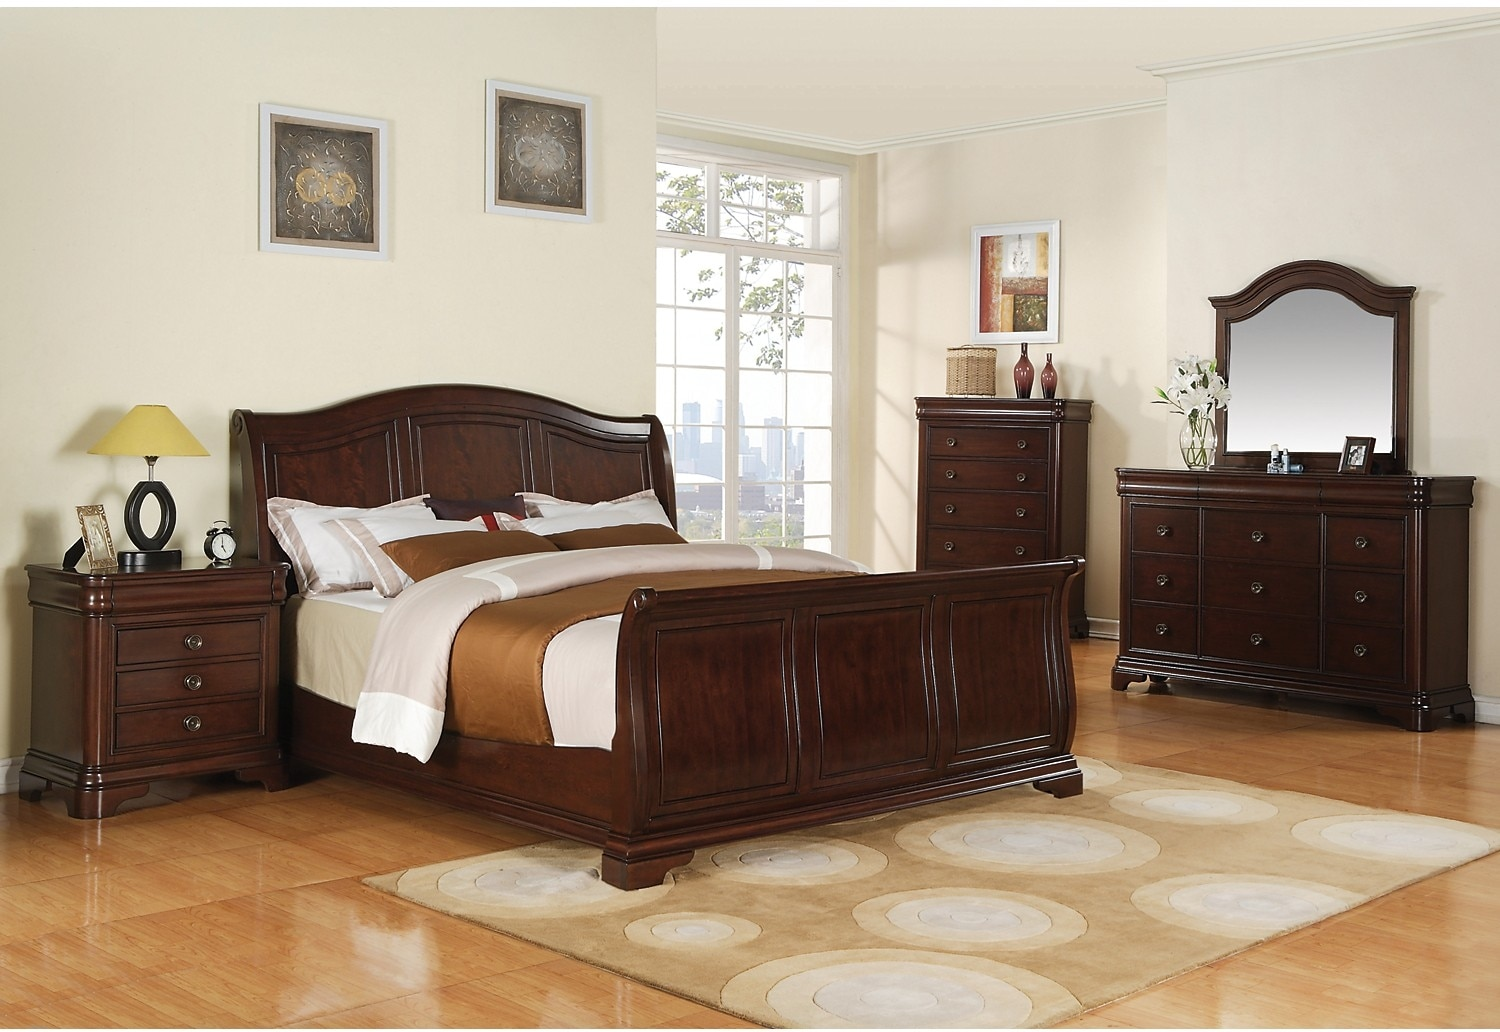 Bedroom Furniture - Cameron 7-Piece Queen Bedroom Set